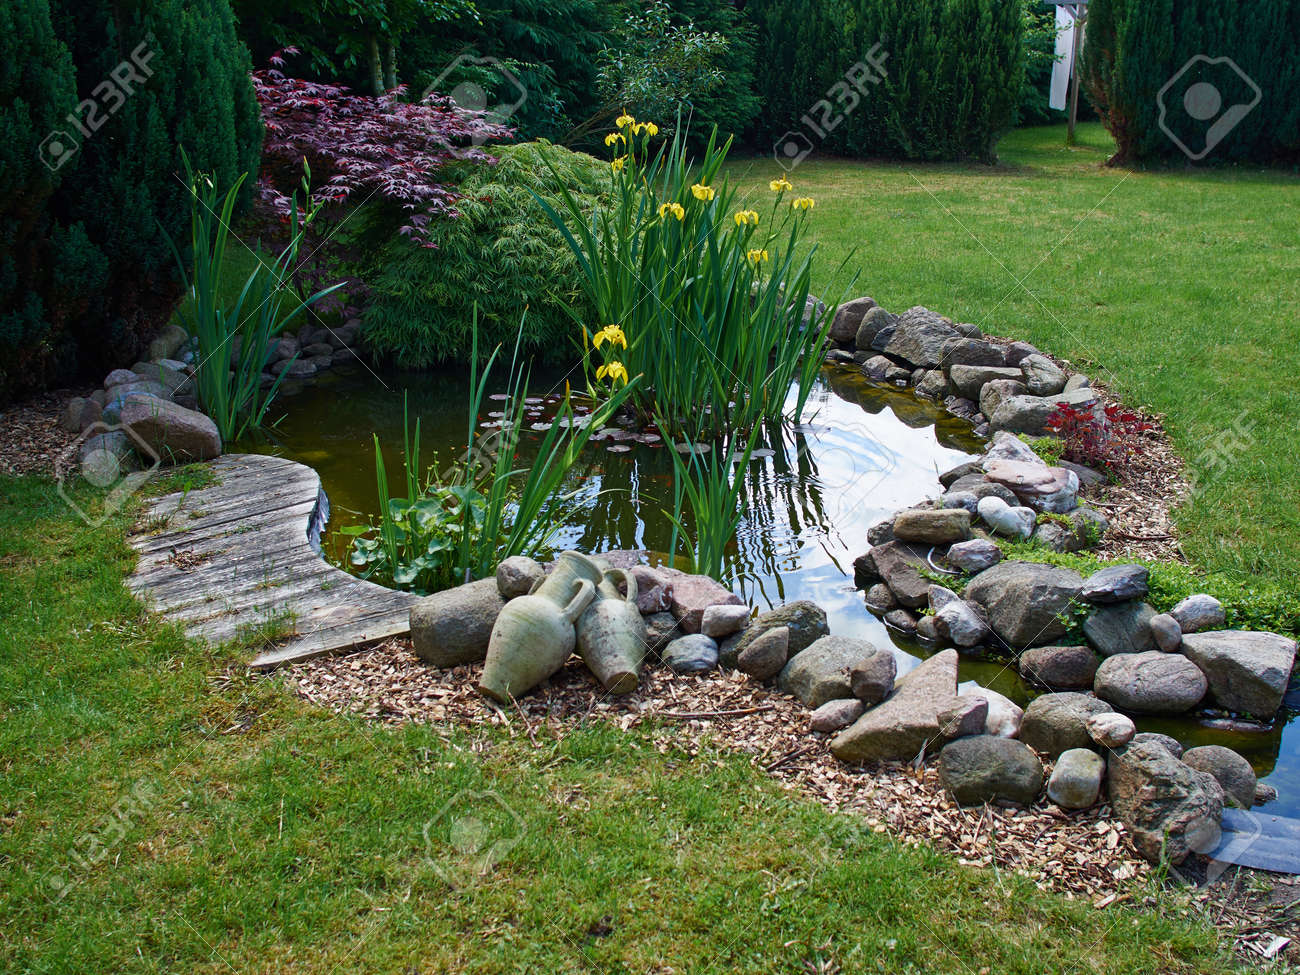 Beautiful classical garden fish pond surrounded by grass gardening background - 58920800